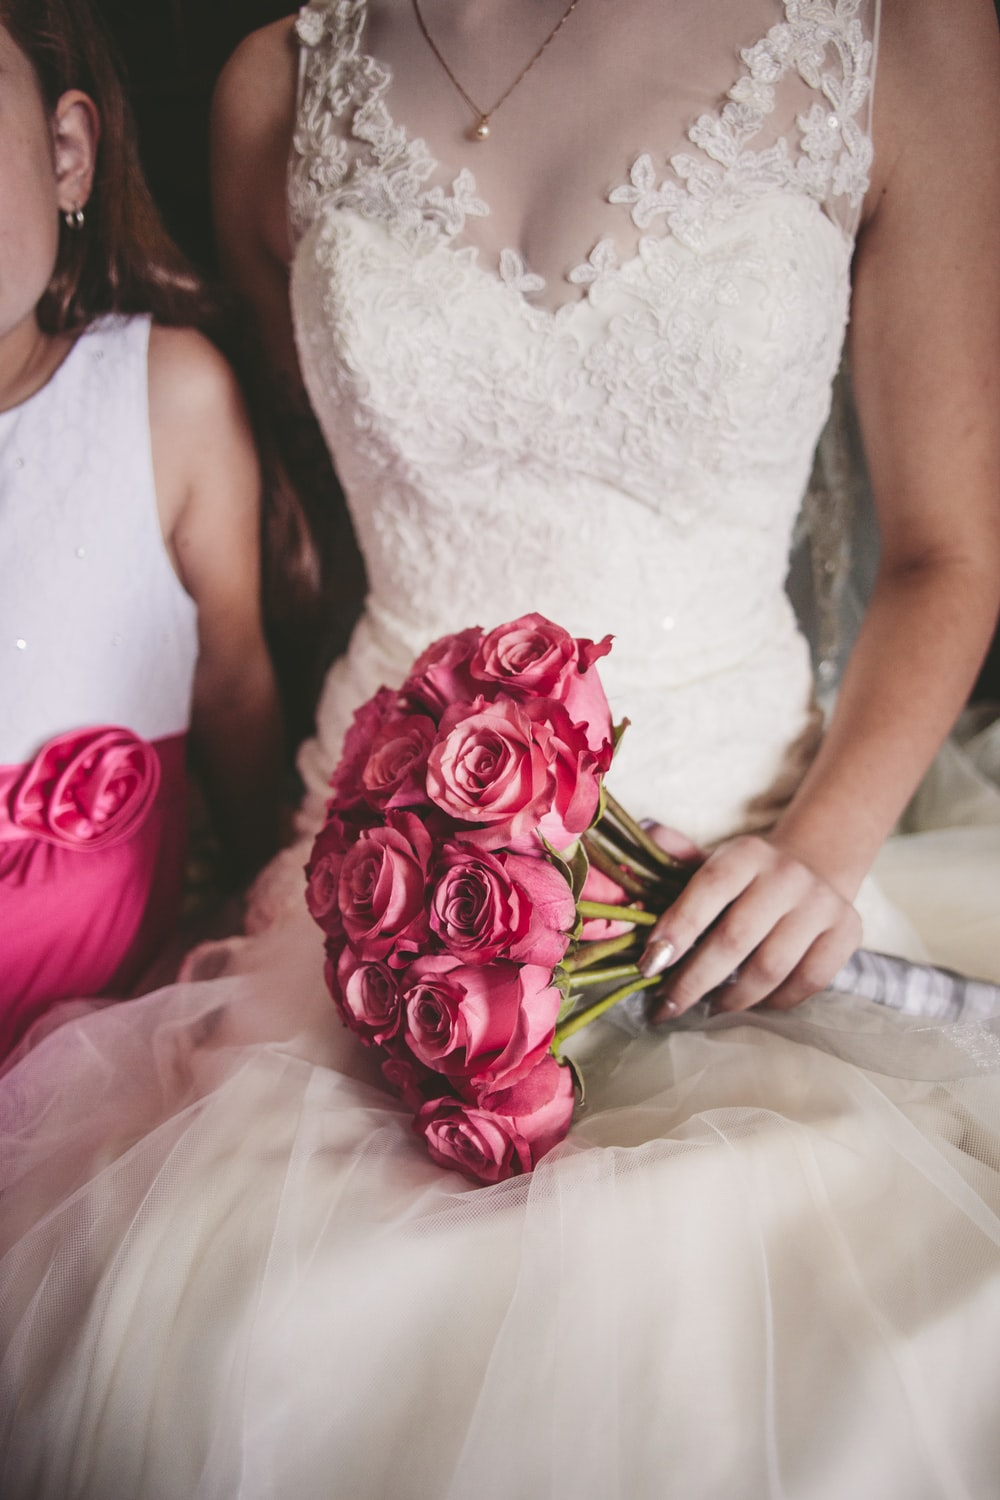 woman wearing white floral wedding dress holding bouquet of rose